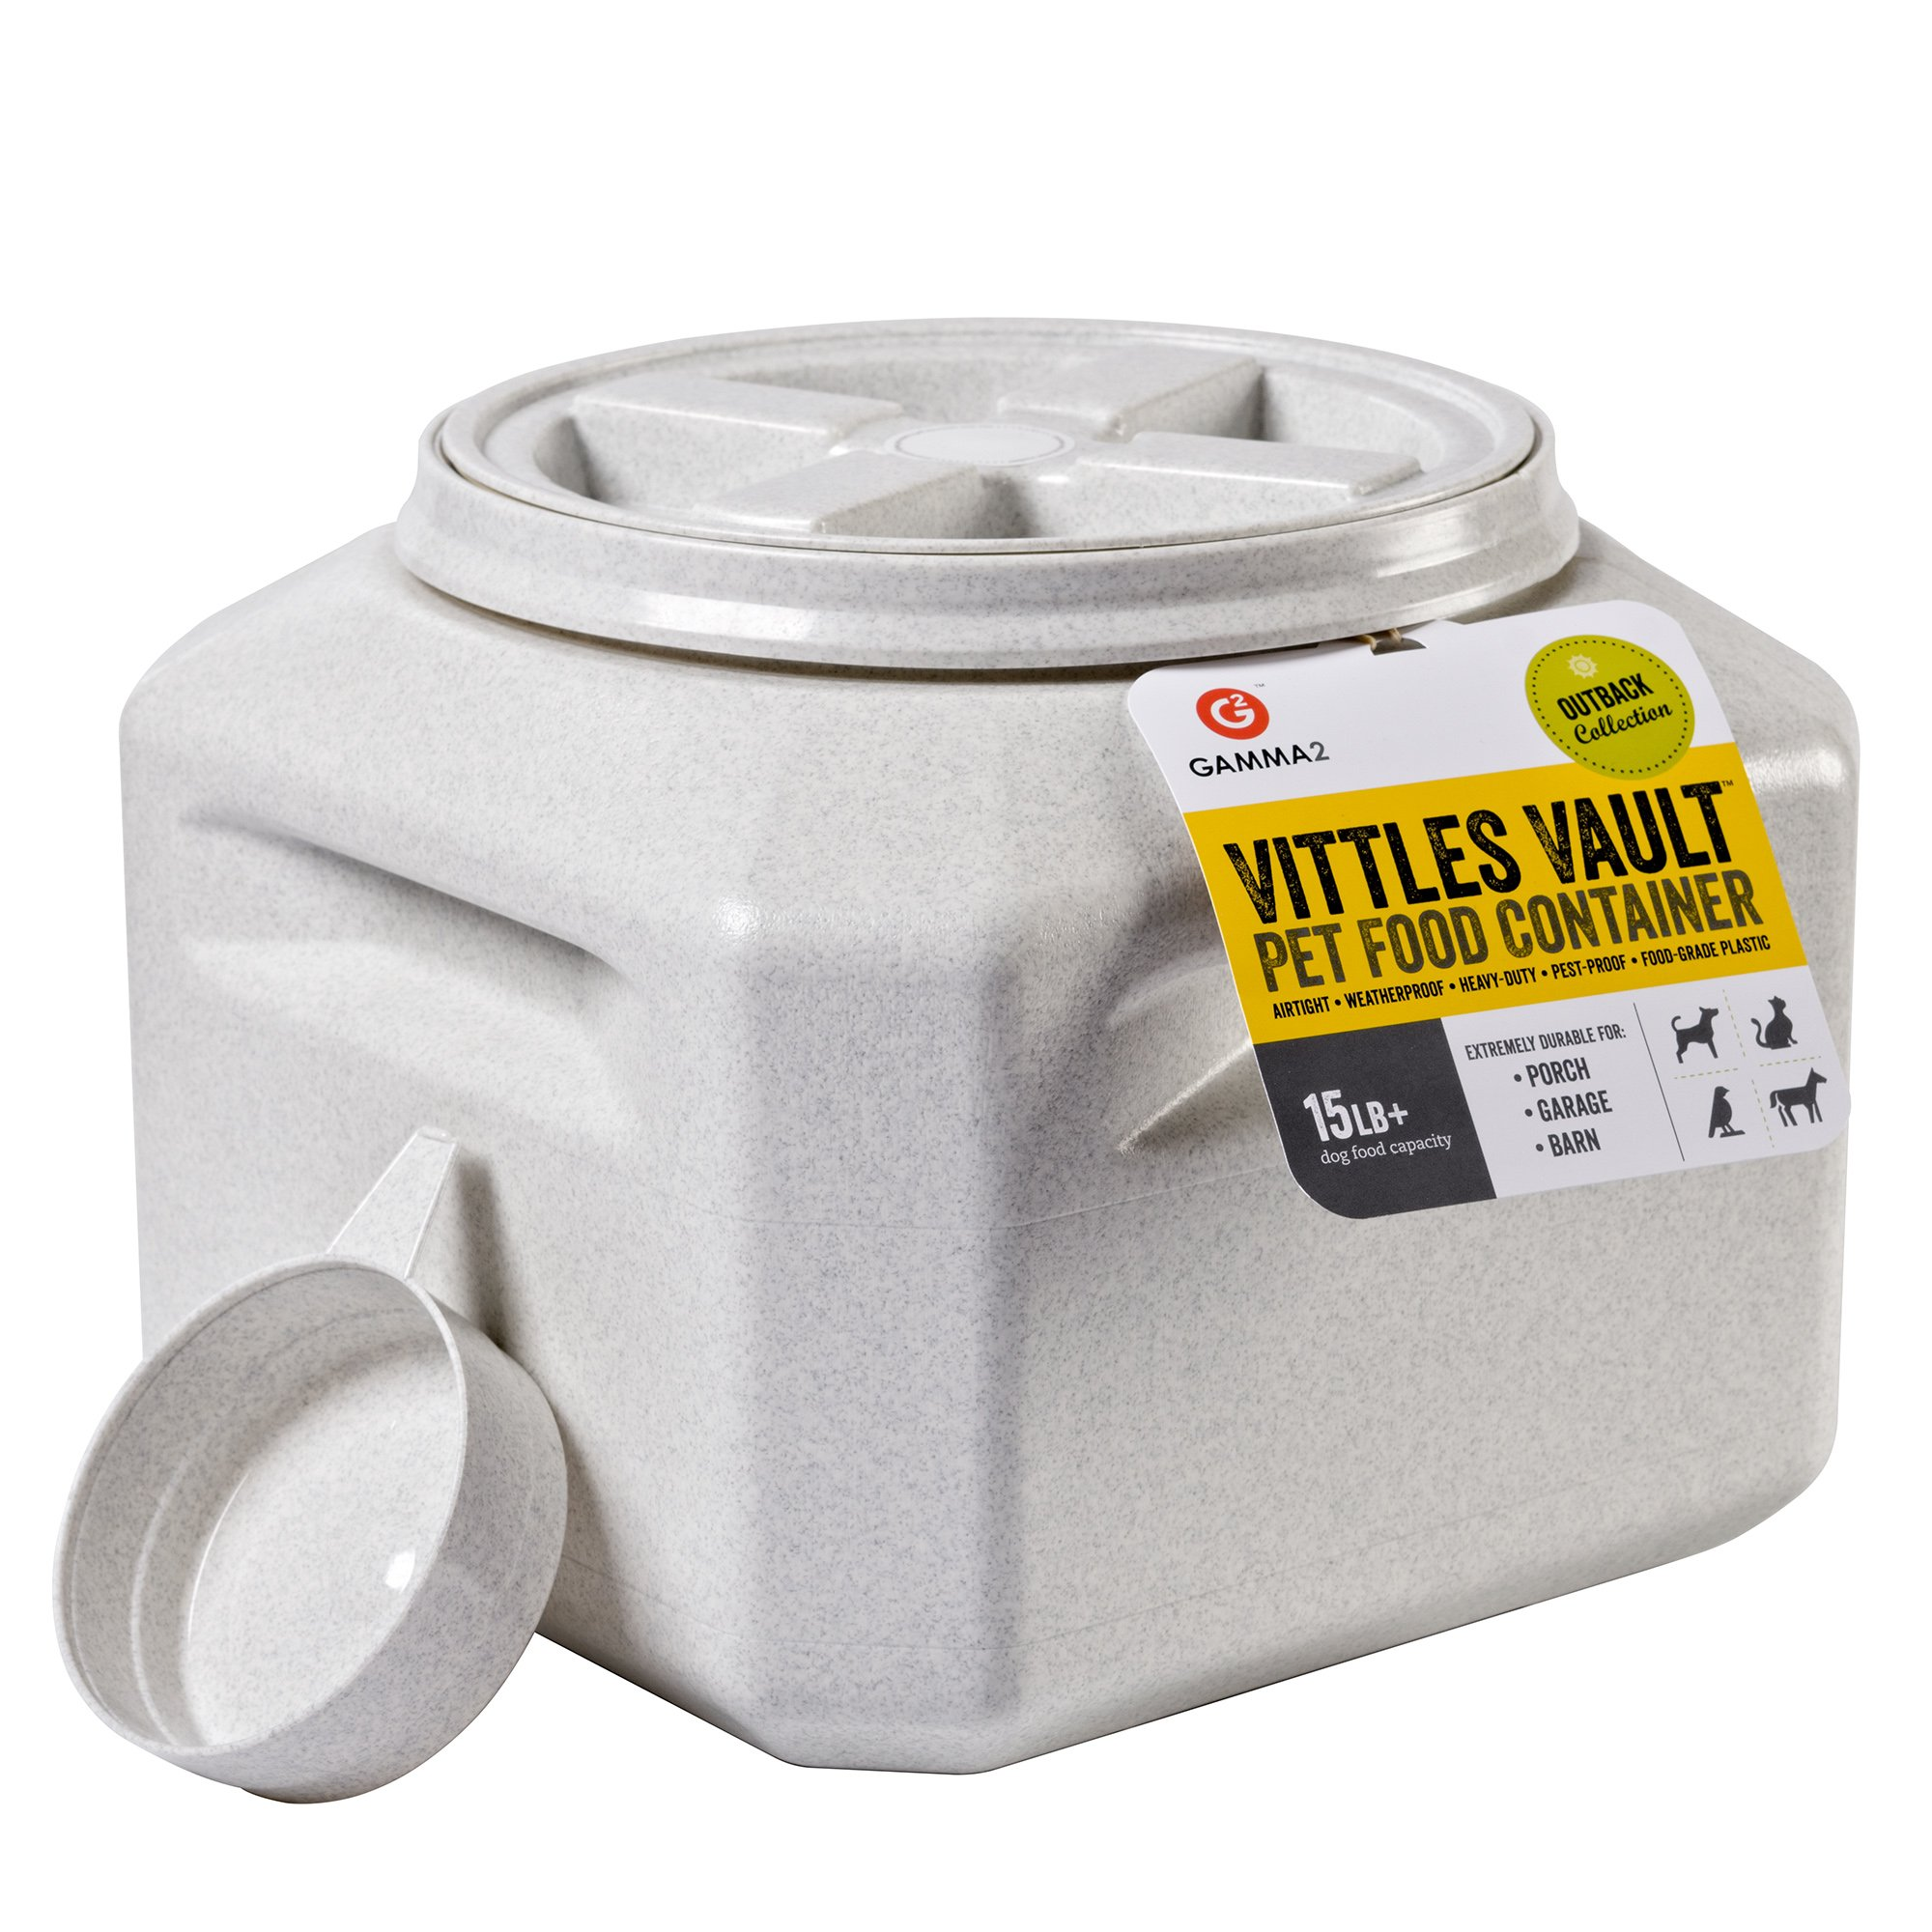 Gamma2 Vittles Vault Outback 15 lb Airtight Pet Food Storage Container